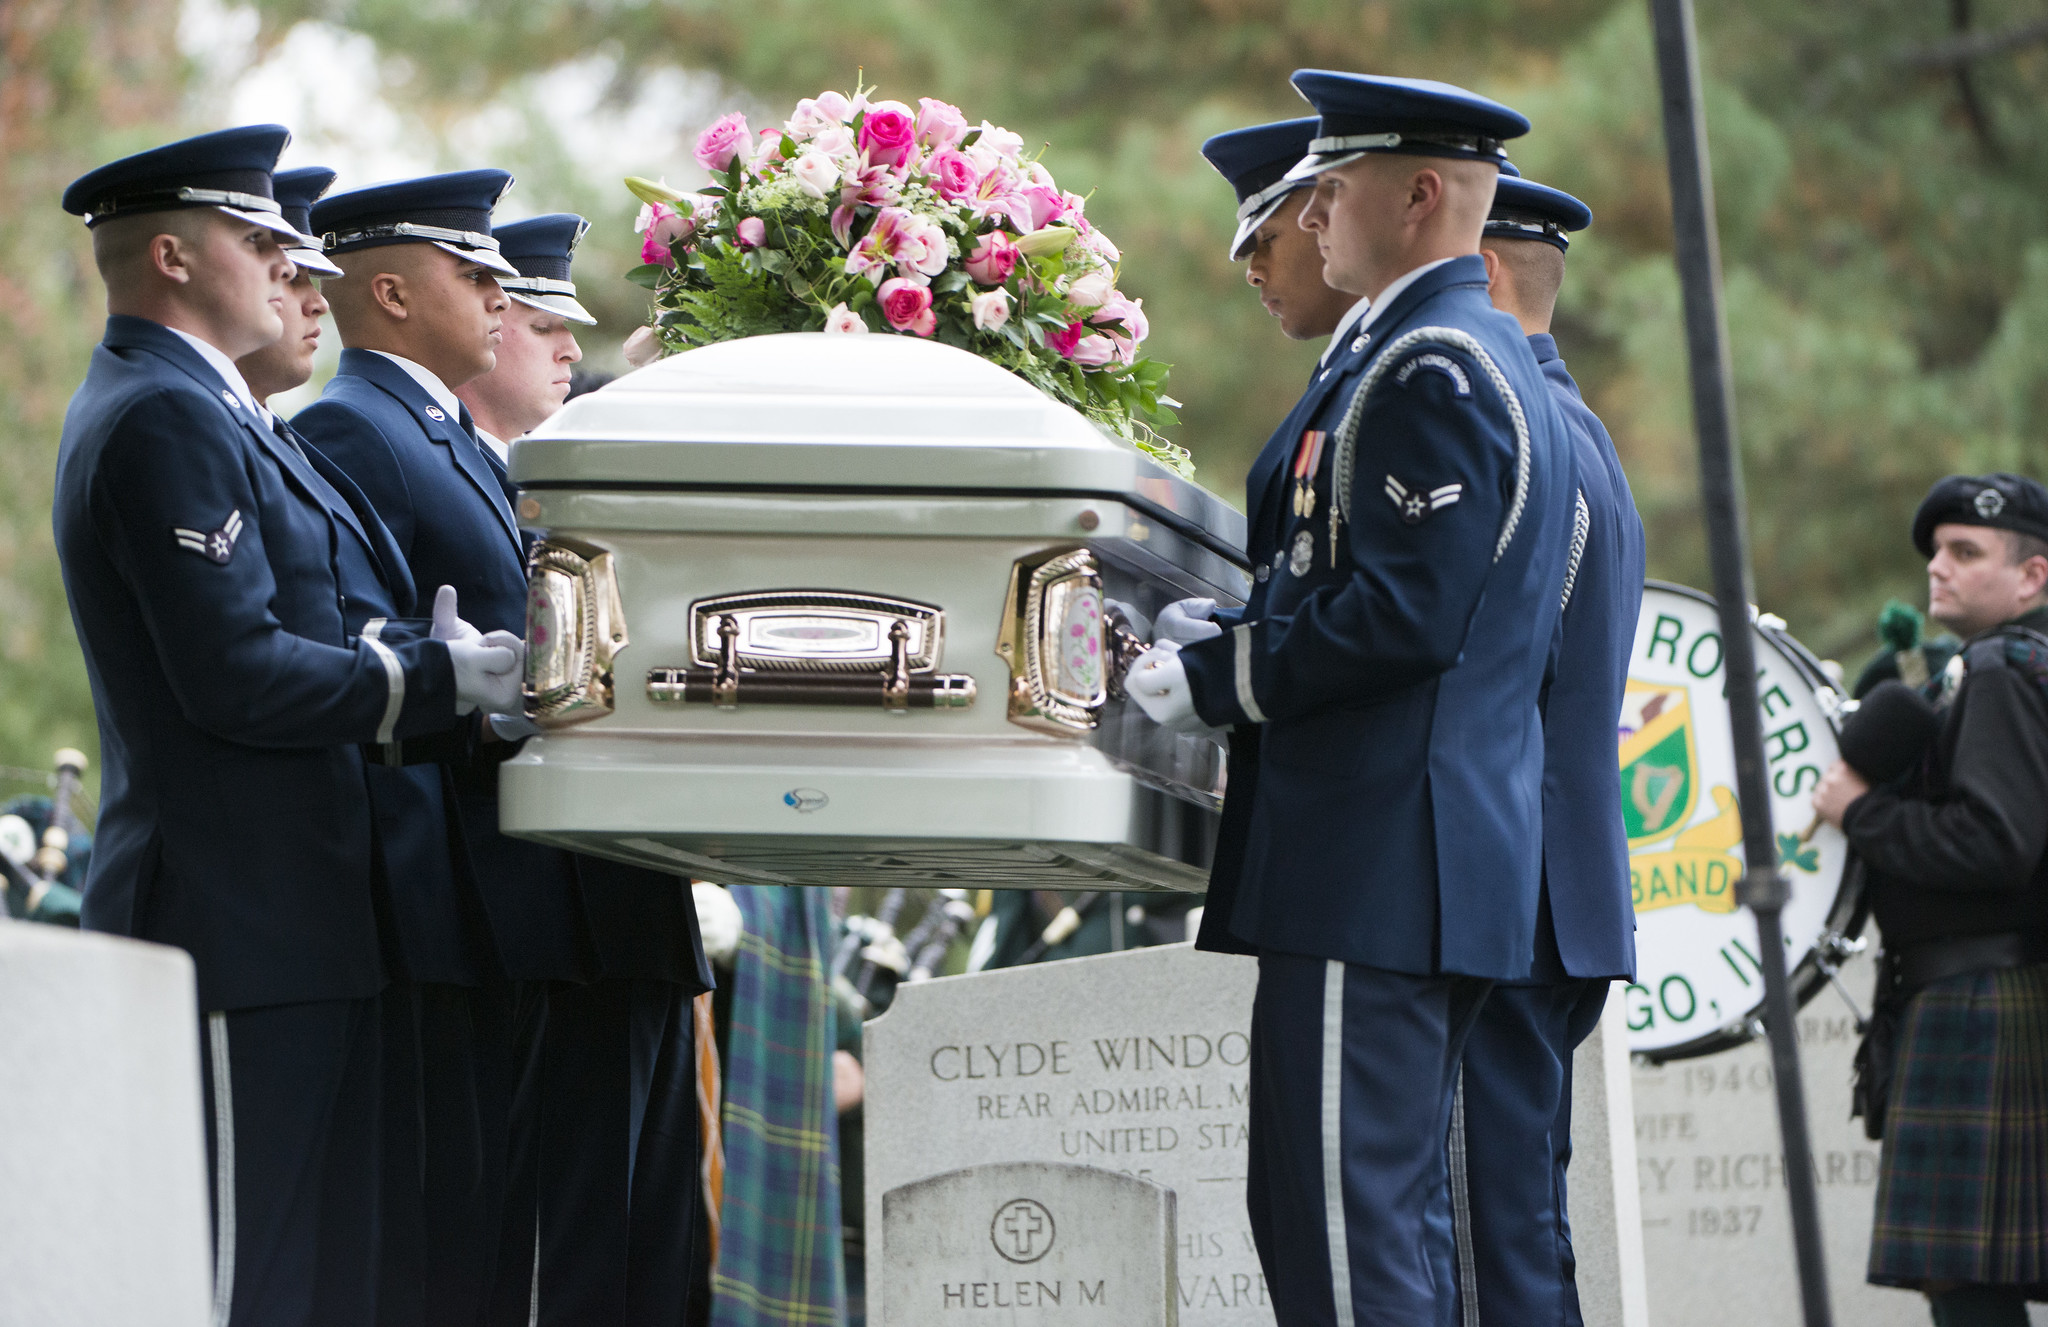 A military casket team at the funeral of the wife of an Air Force officer